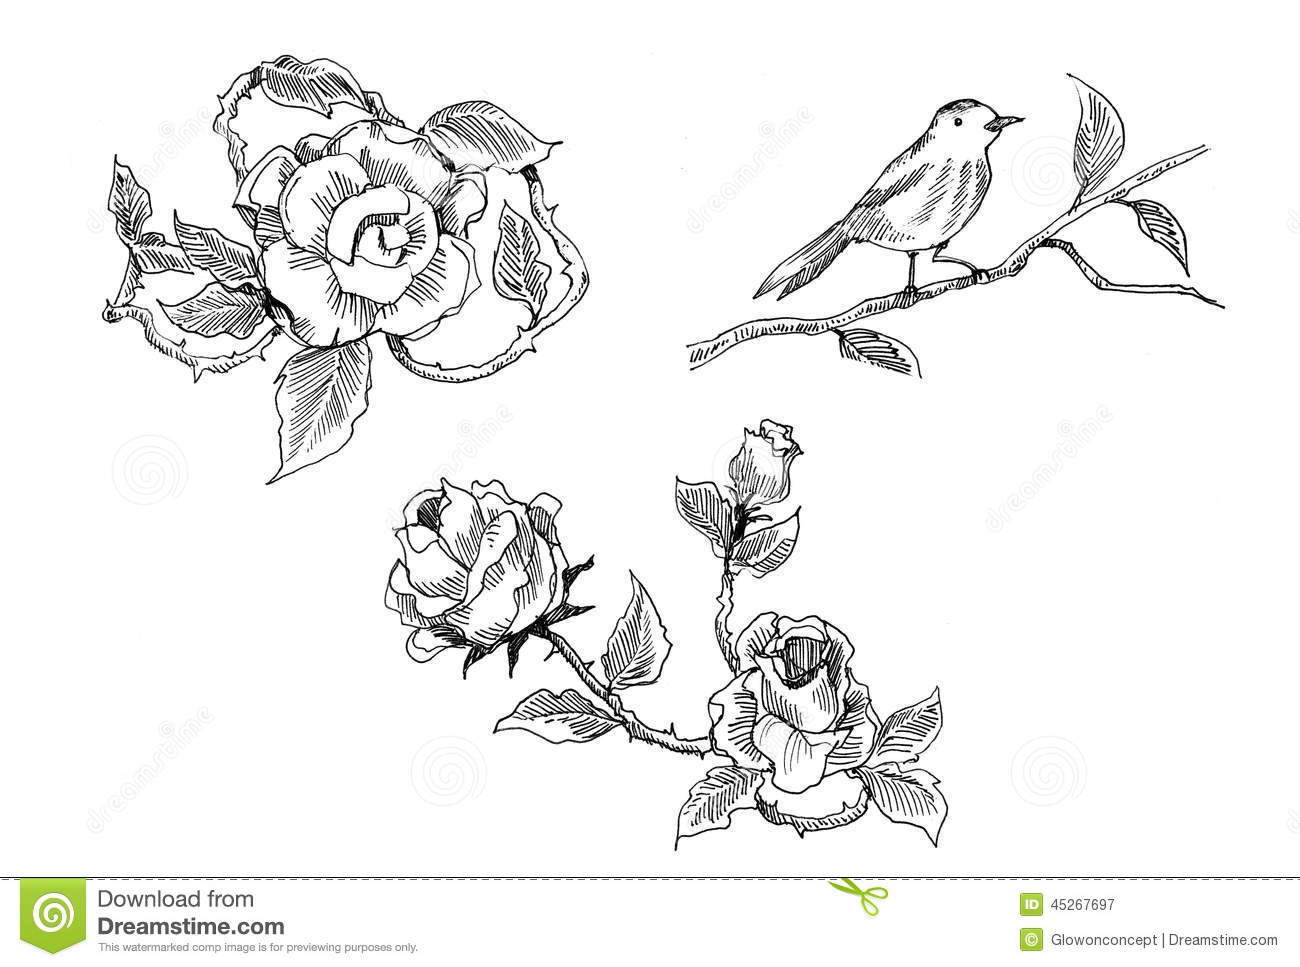 Vintage Rose And Bird Drawing Stock Illustration - Image: 45267697